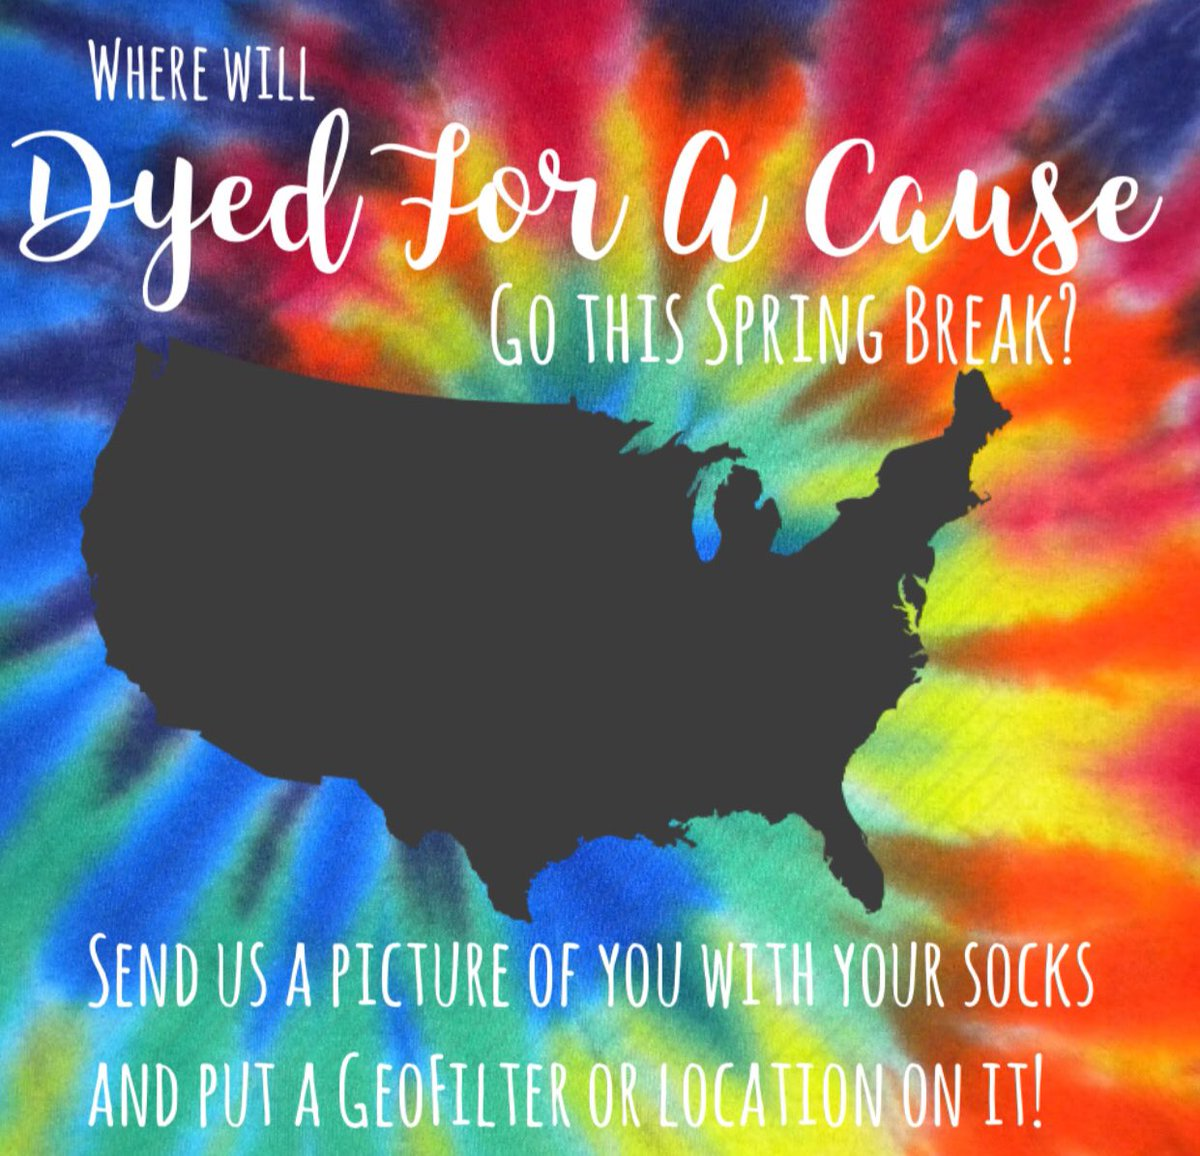 Dyed for a cause on twitter use the filters on snapchat geofilter dyed for a cause on twitter use the filters on snapchat geofilter swipe across the screen instagram on stories tap stickers click location send ccuart Image collections